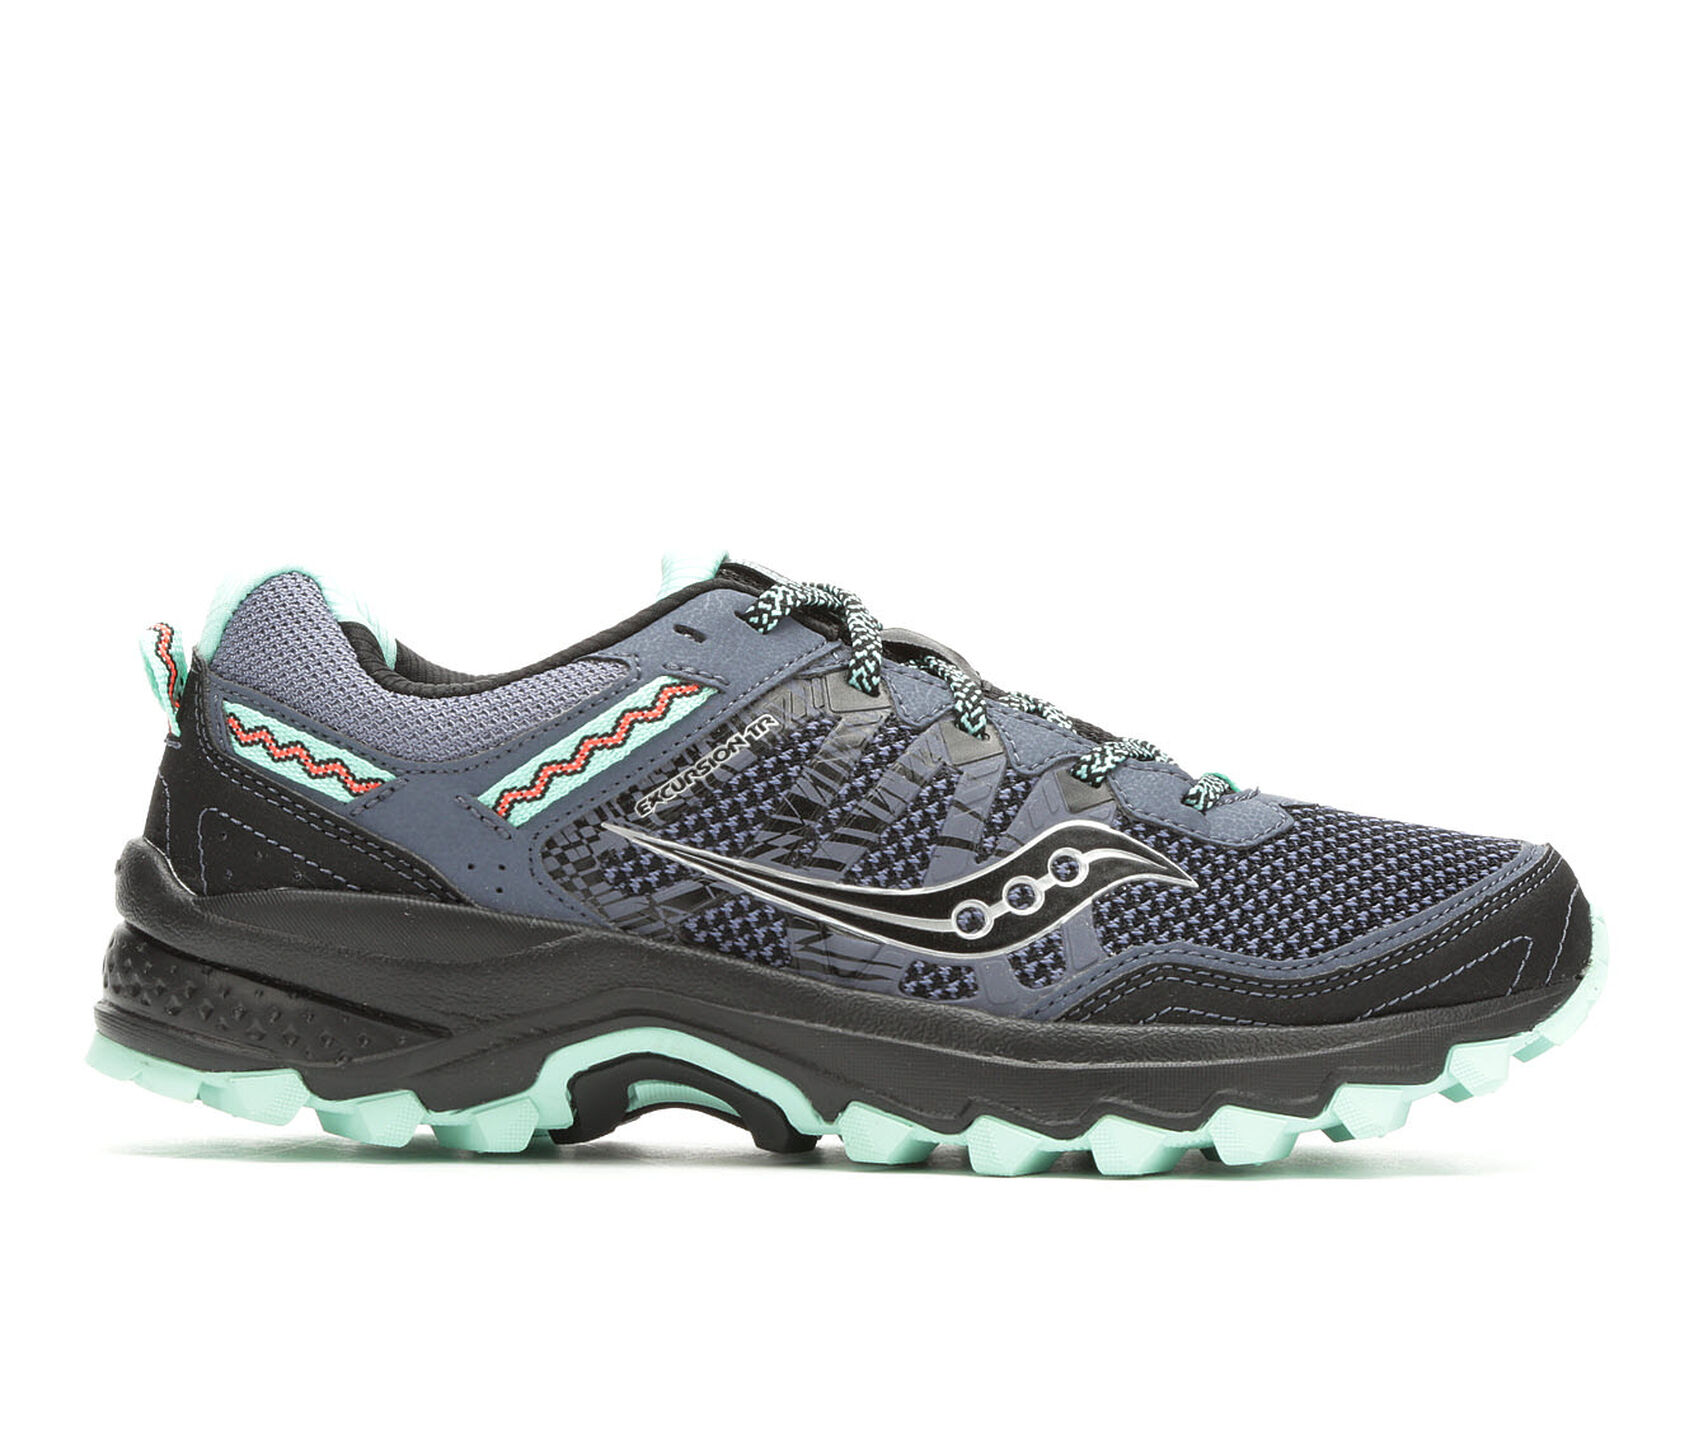 6719de4aa3 Women's Saucony Excursion TR 12 Trail Running Shoes